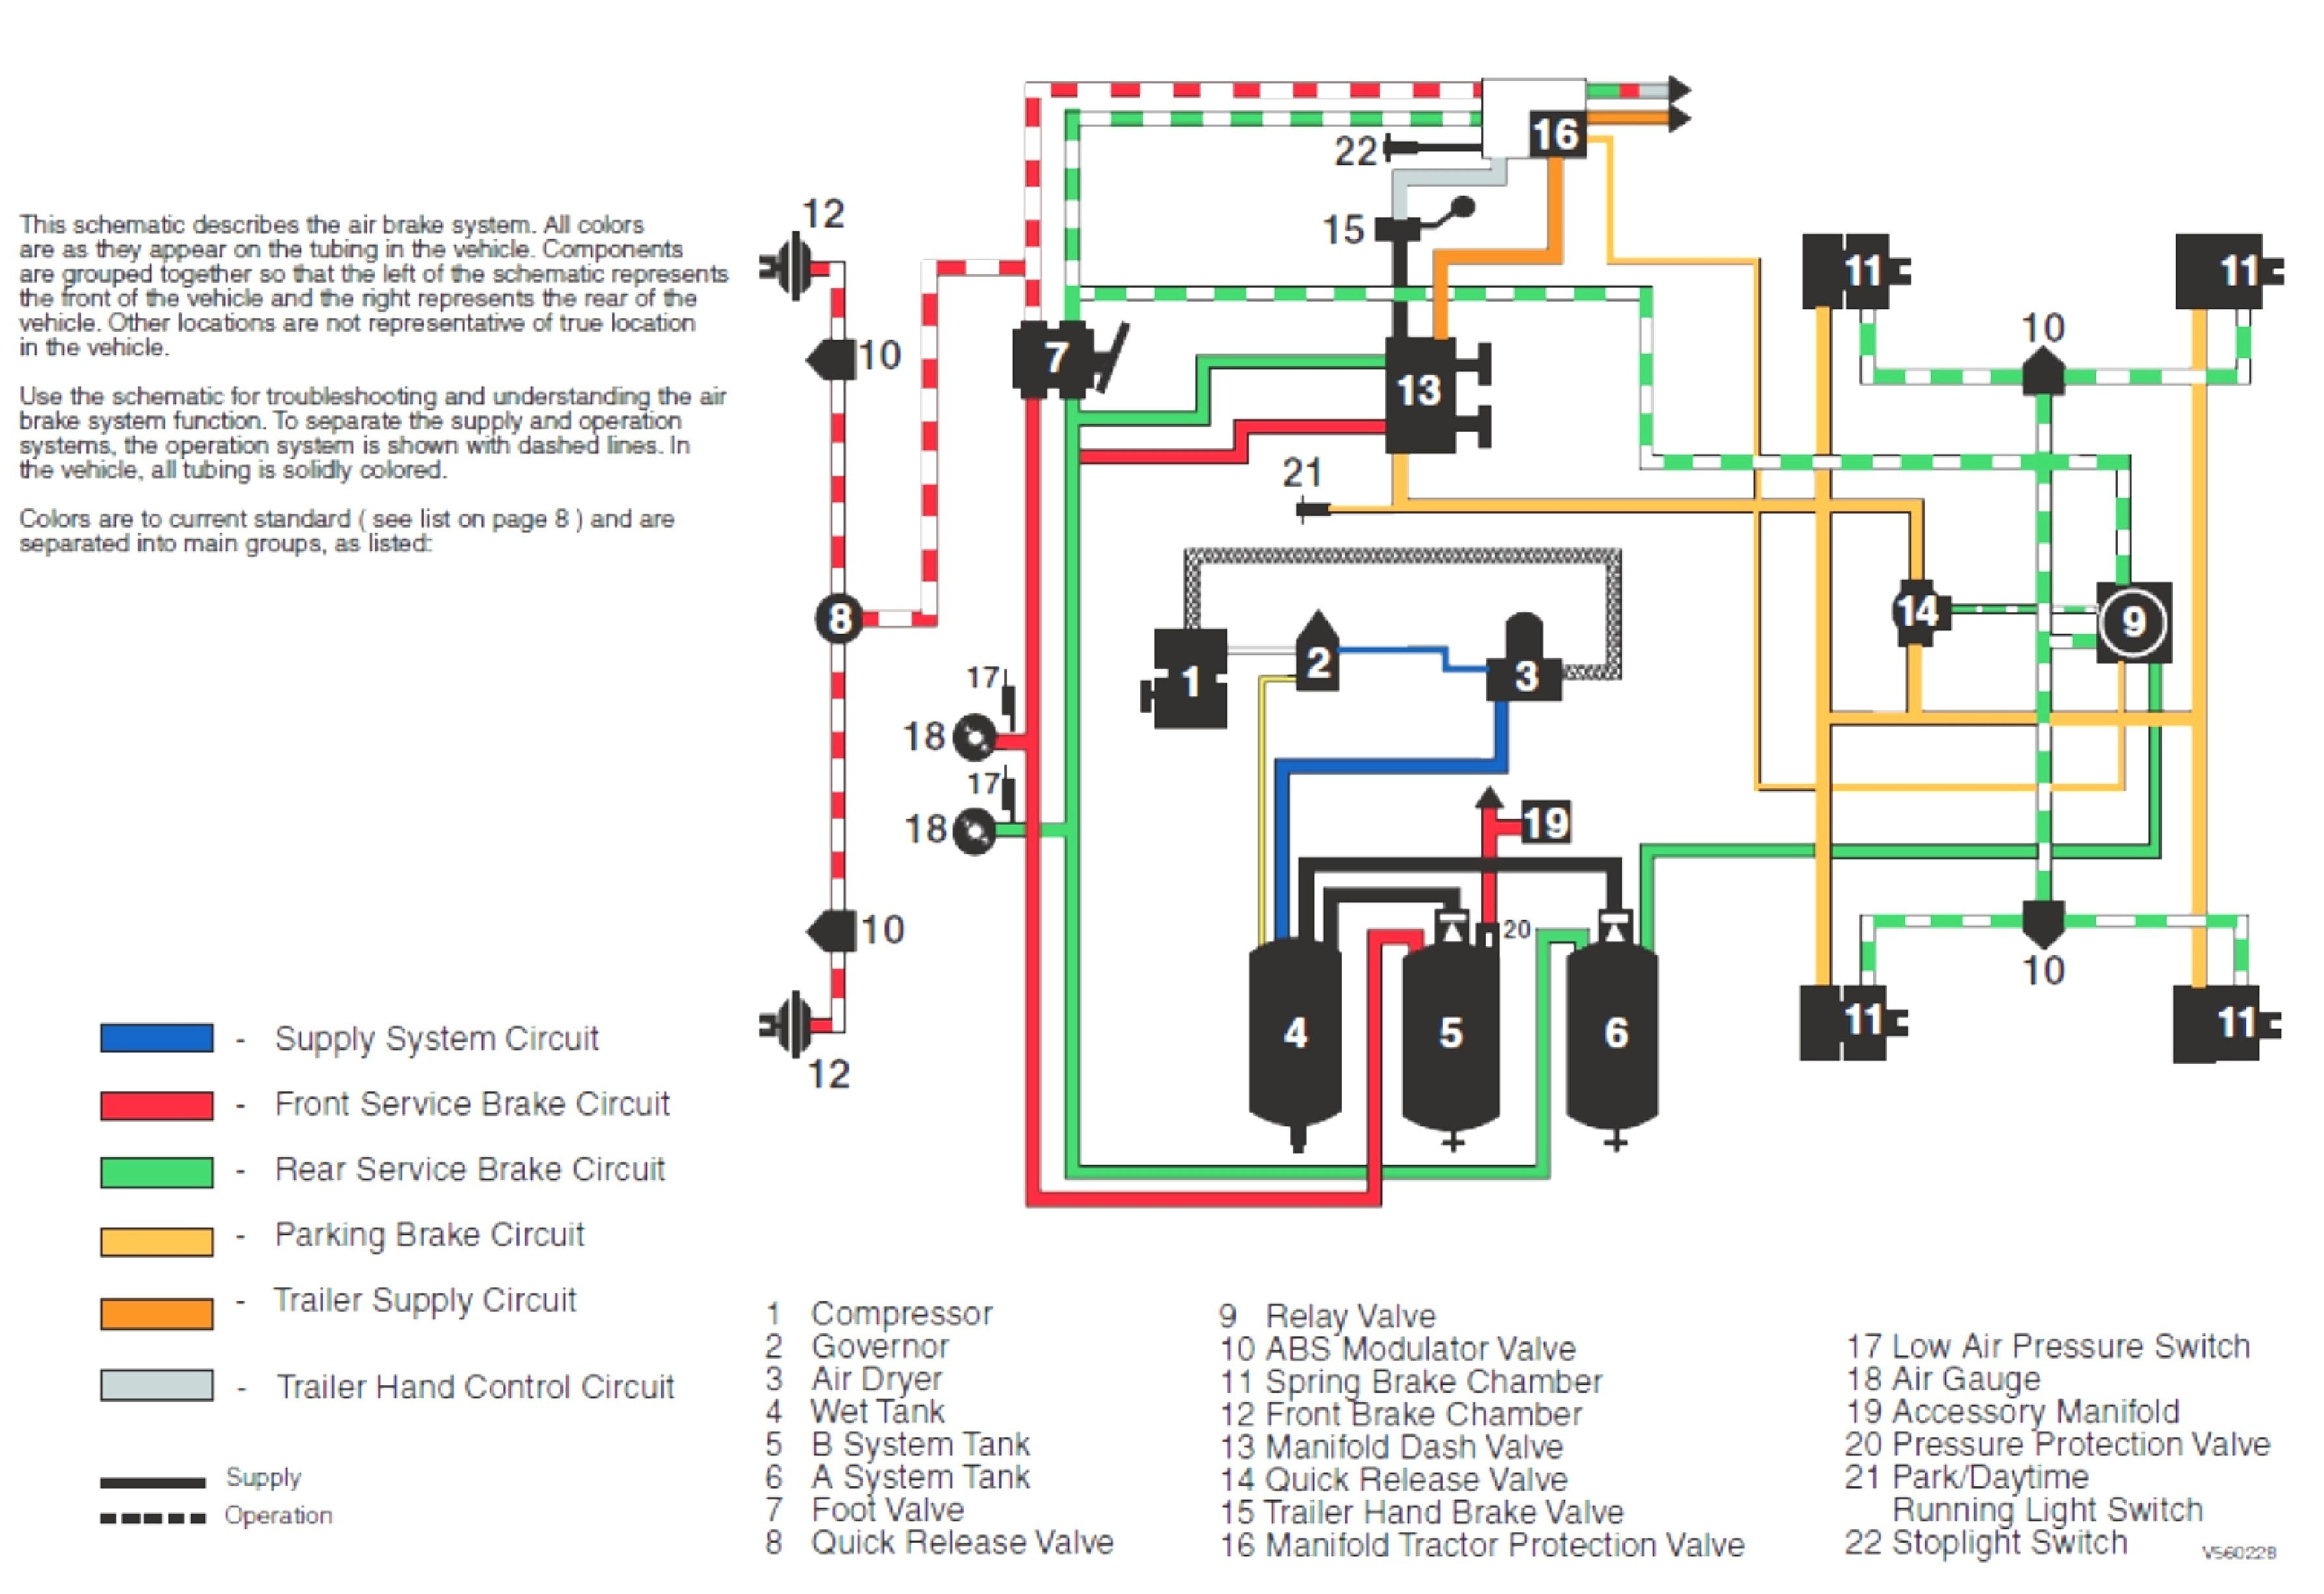 Trailer Tail Light Wiring Diagram - Mikulskilawoffices - Wiring Utility Trailer Diagram